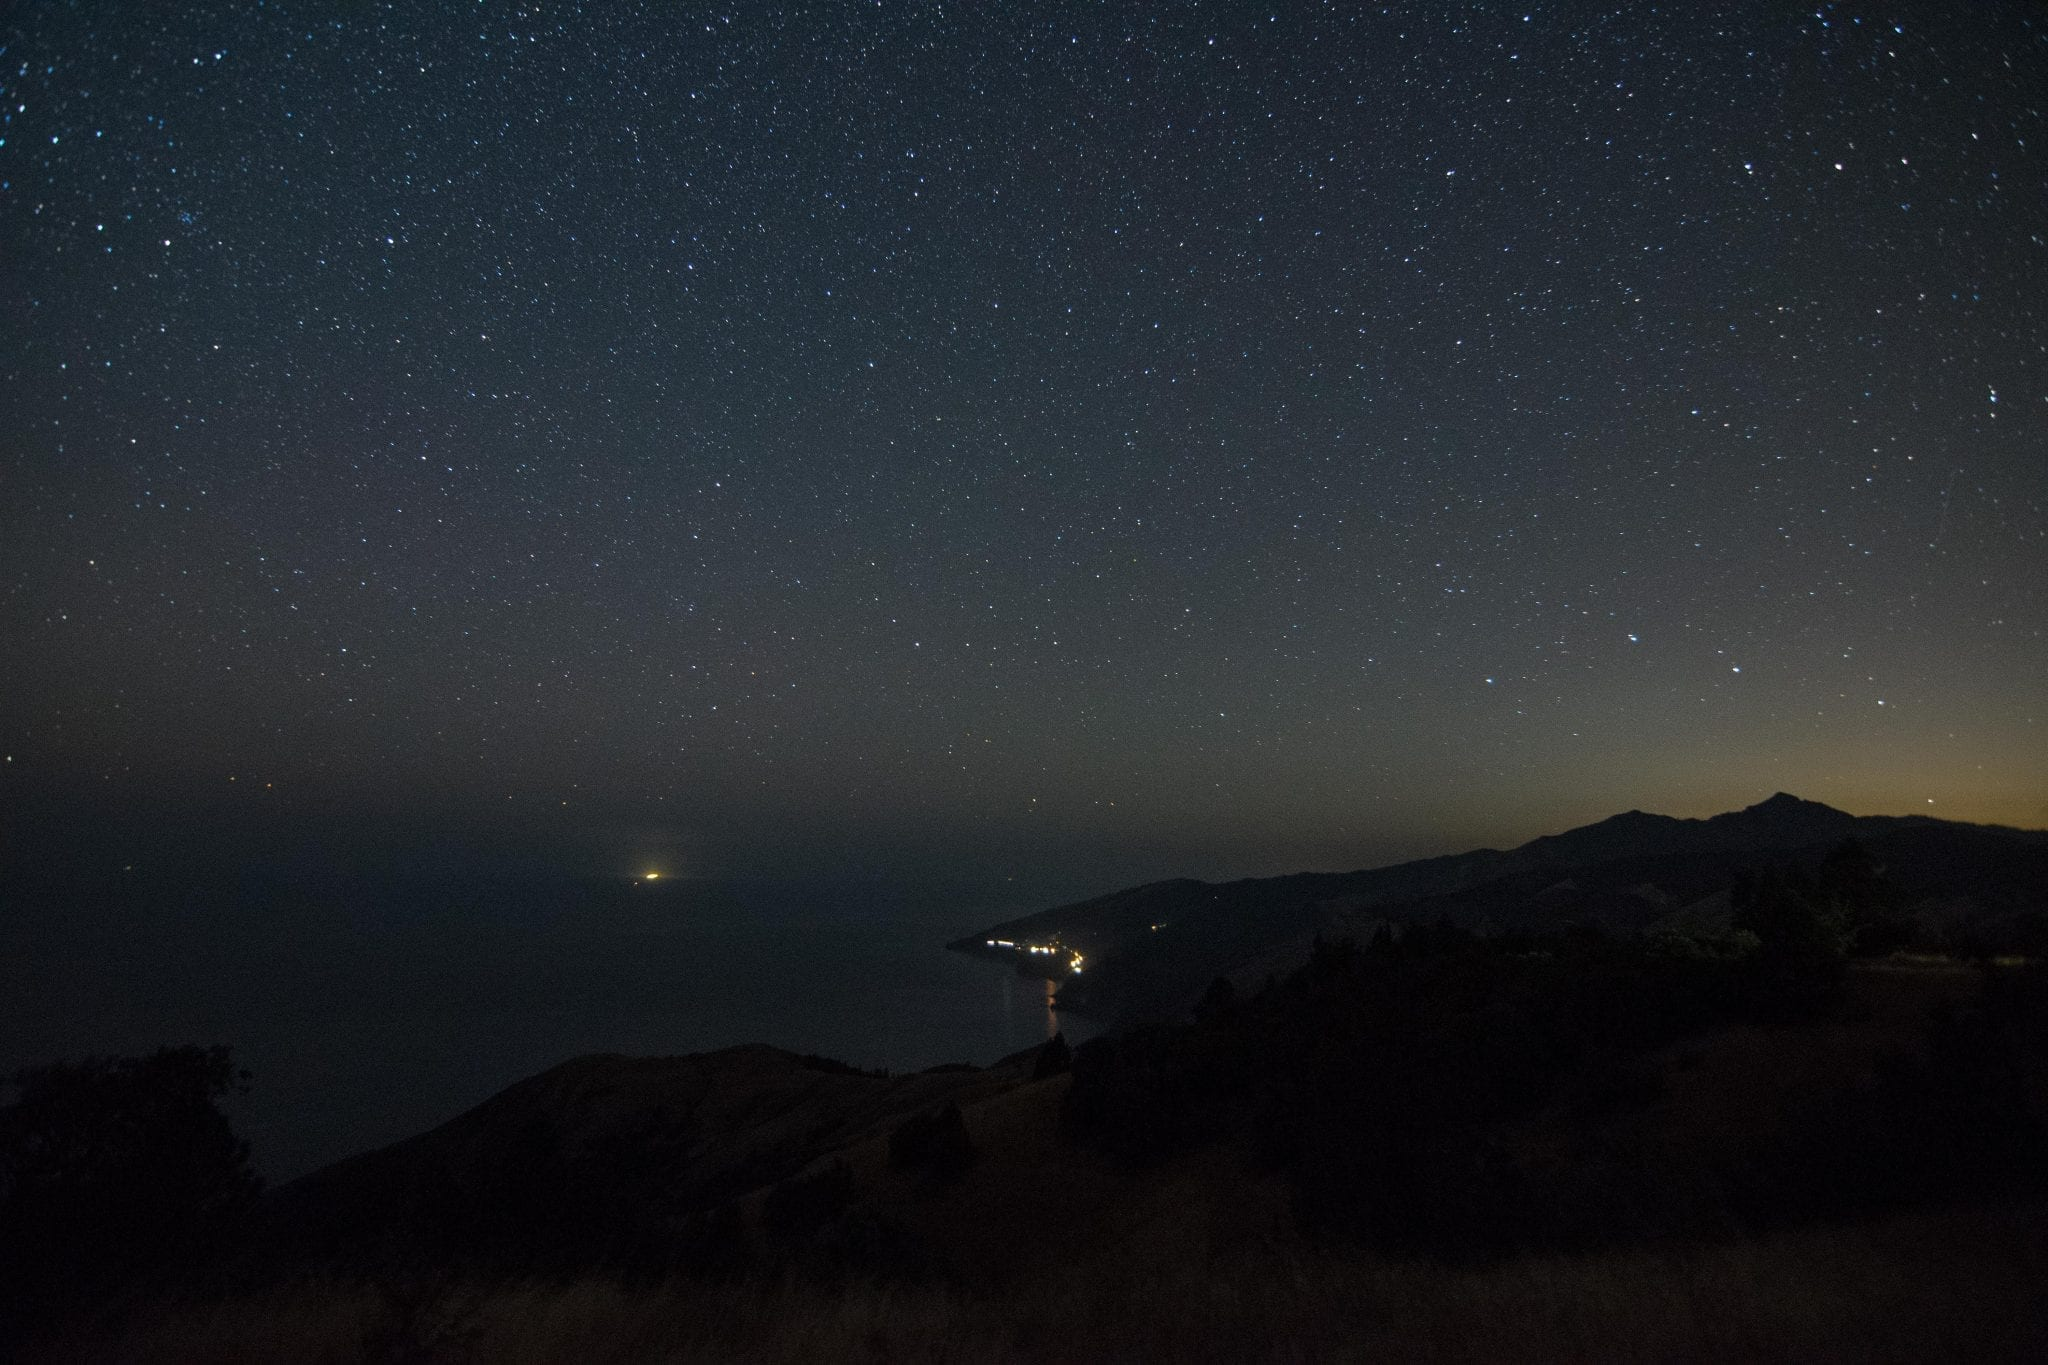 starry night sky over pacific coast highway route one California from big sur state park